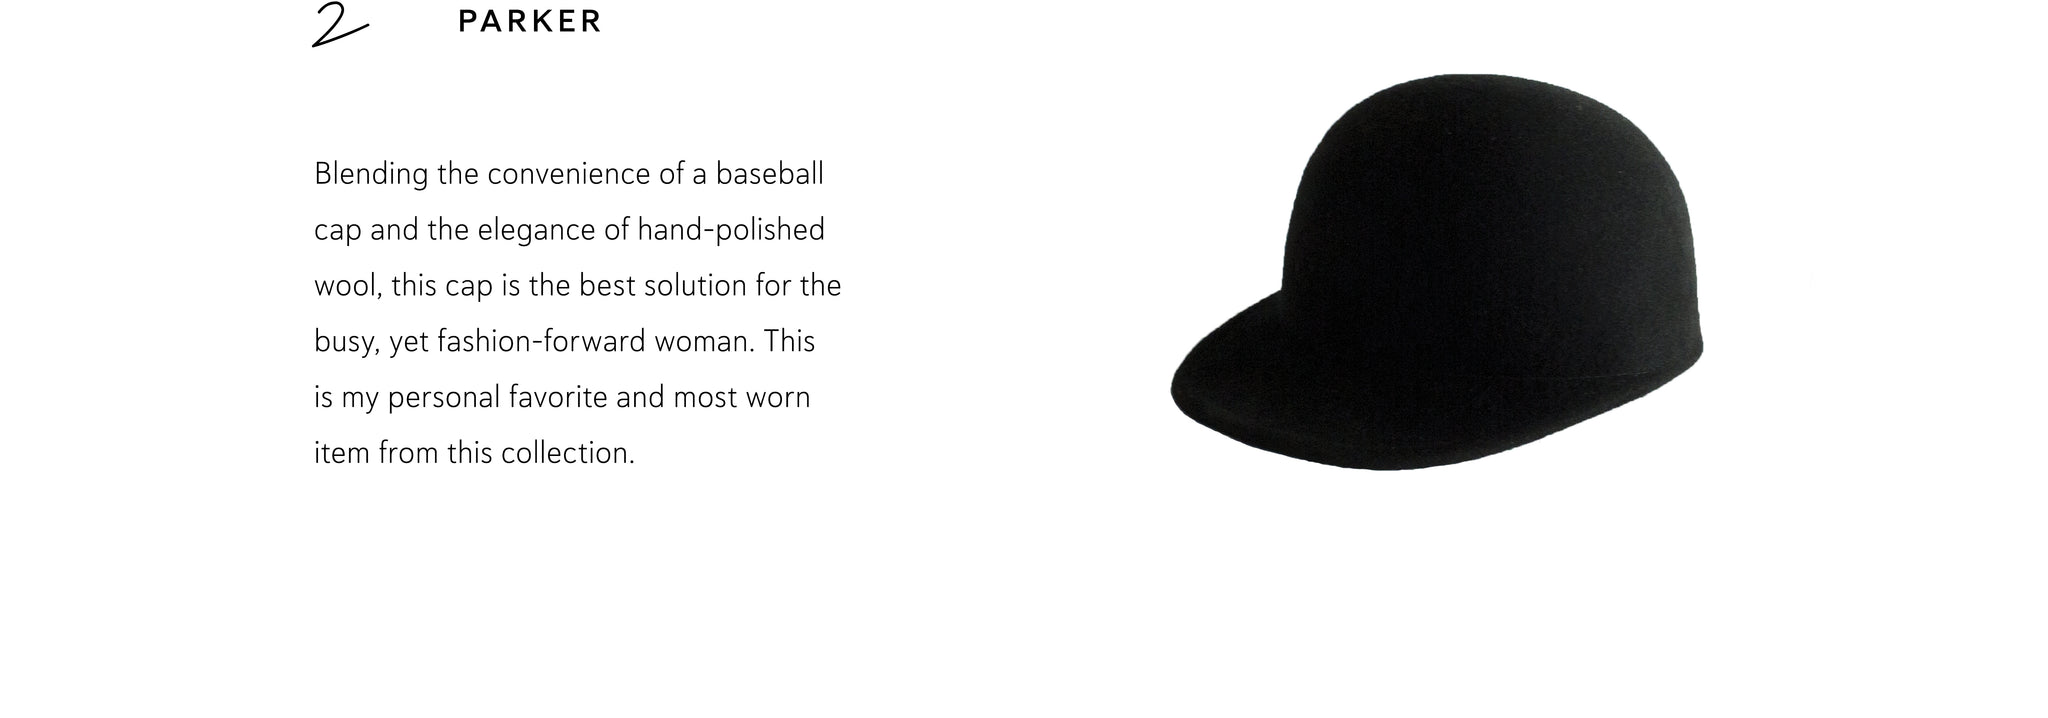 Parker: Blending the convenience of a baseball cap and the elegance of hand-polished wool, this cap is the best solution for the busy, yet fashion-forward woman. This is my personal favorite and most worn item from this collection.